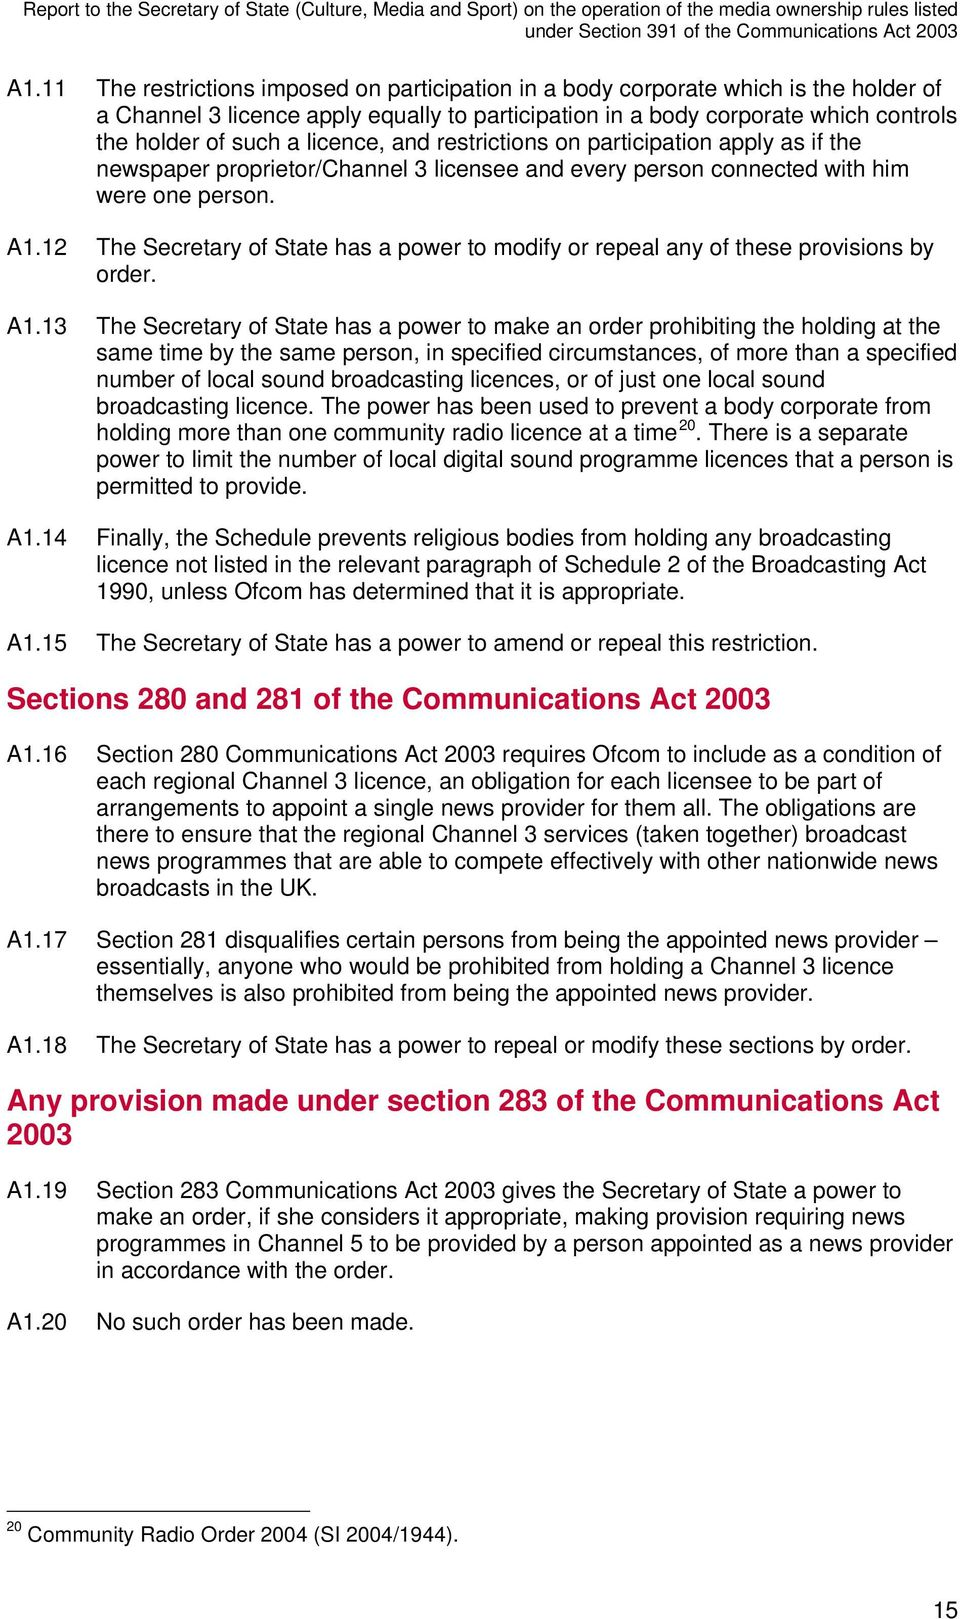 12 The Secretary of State has a power to modify or repeal any of these provisions by order. A1.